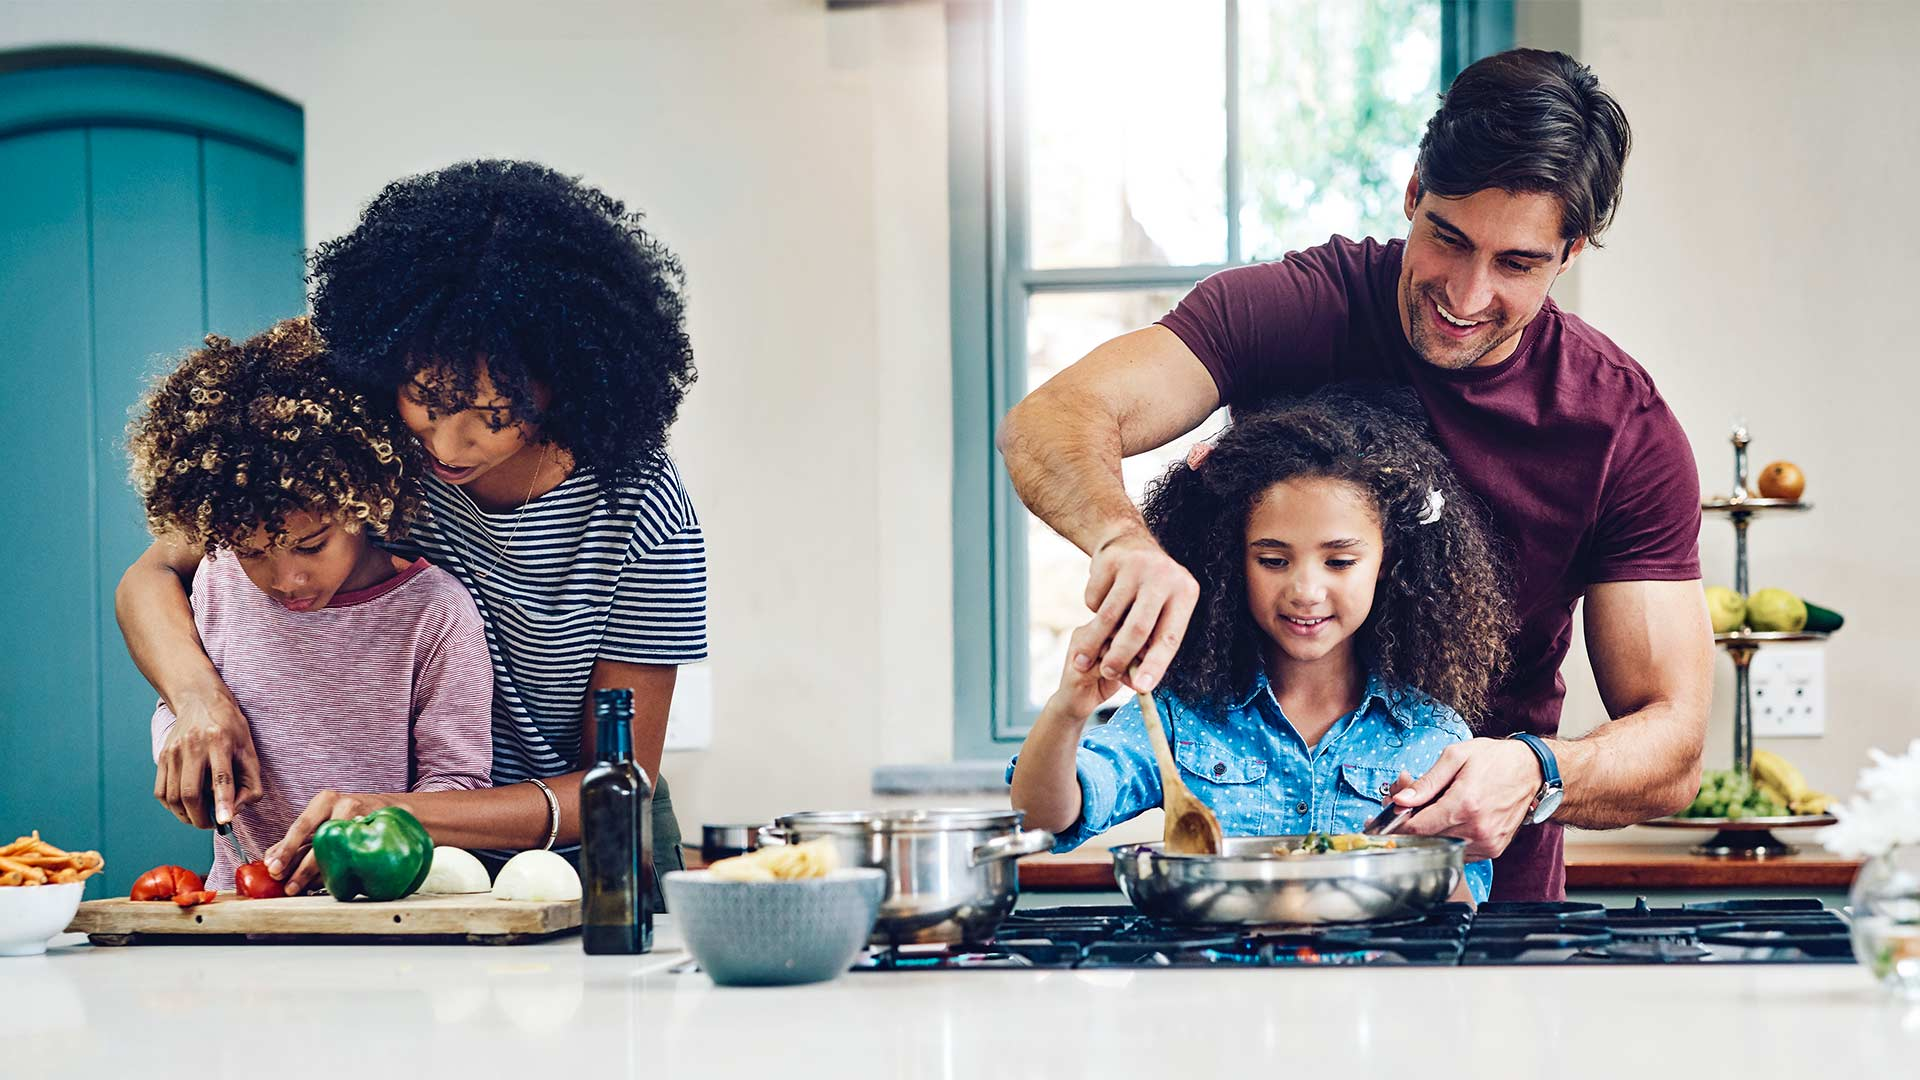 67010-570250-Teach-Your-Kids-to-Cook---Theyll-Be-healthier-for-Life_Header_1920x1080